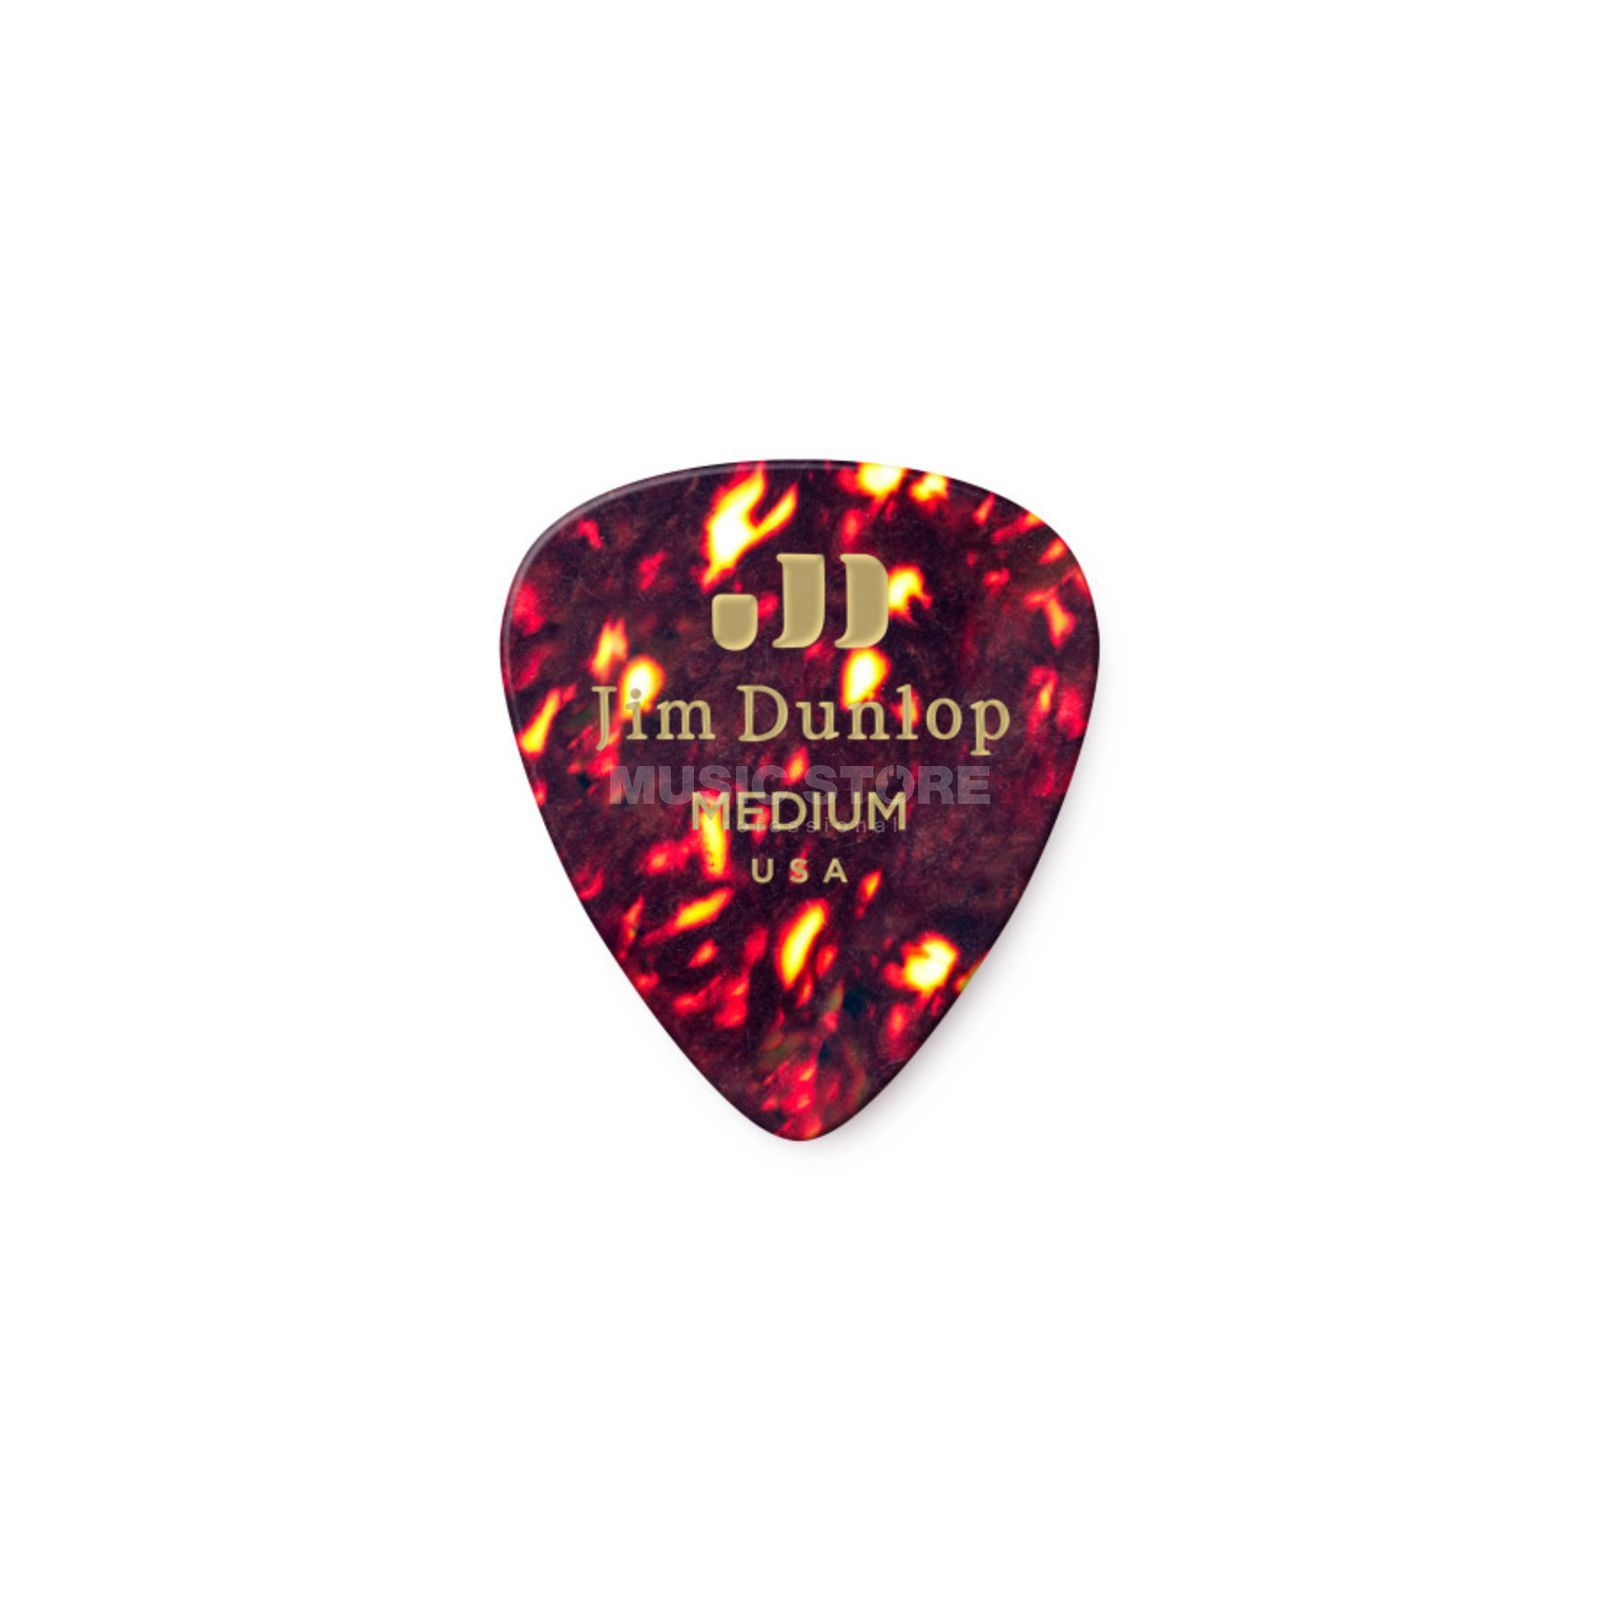 Dunlop Genuine Medium Picks Celluloid Box of 12, Shell 483 Produktbillede